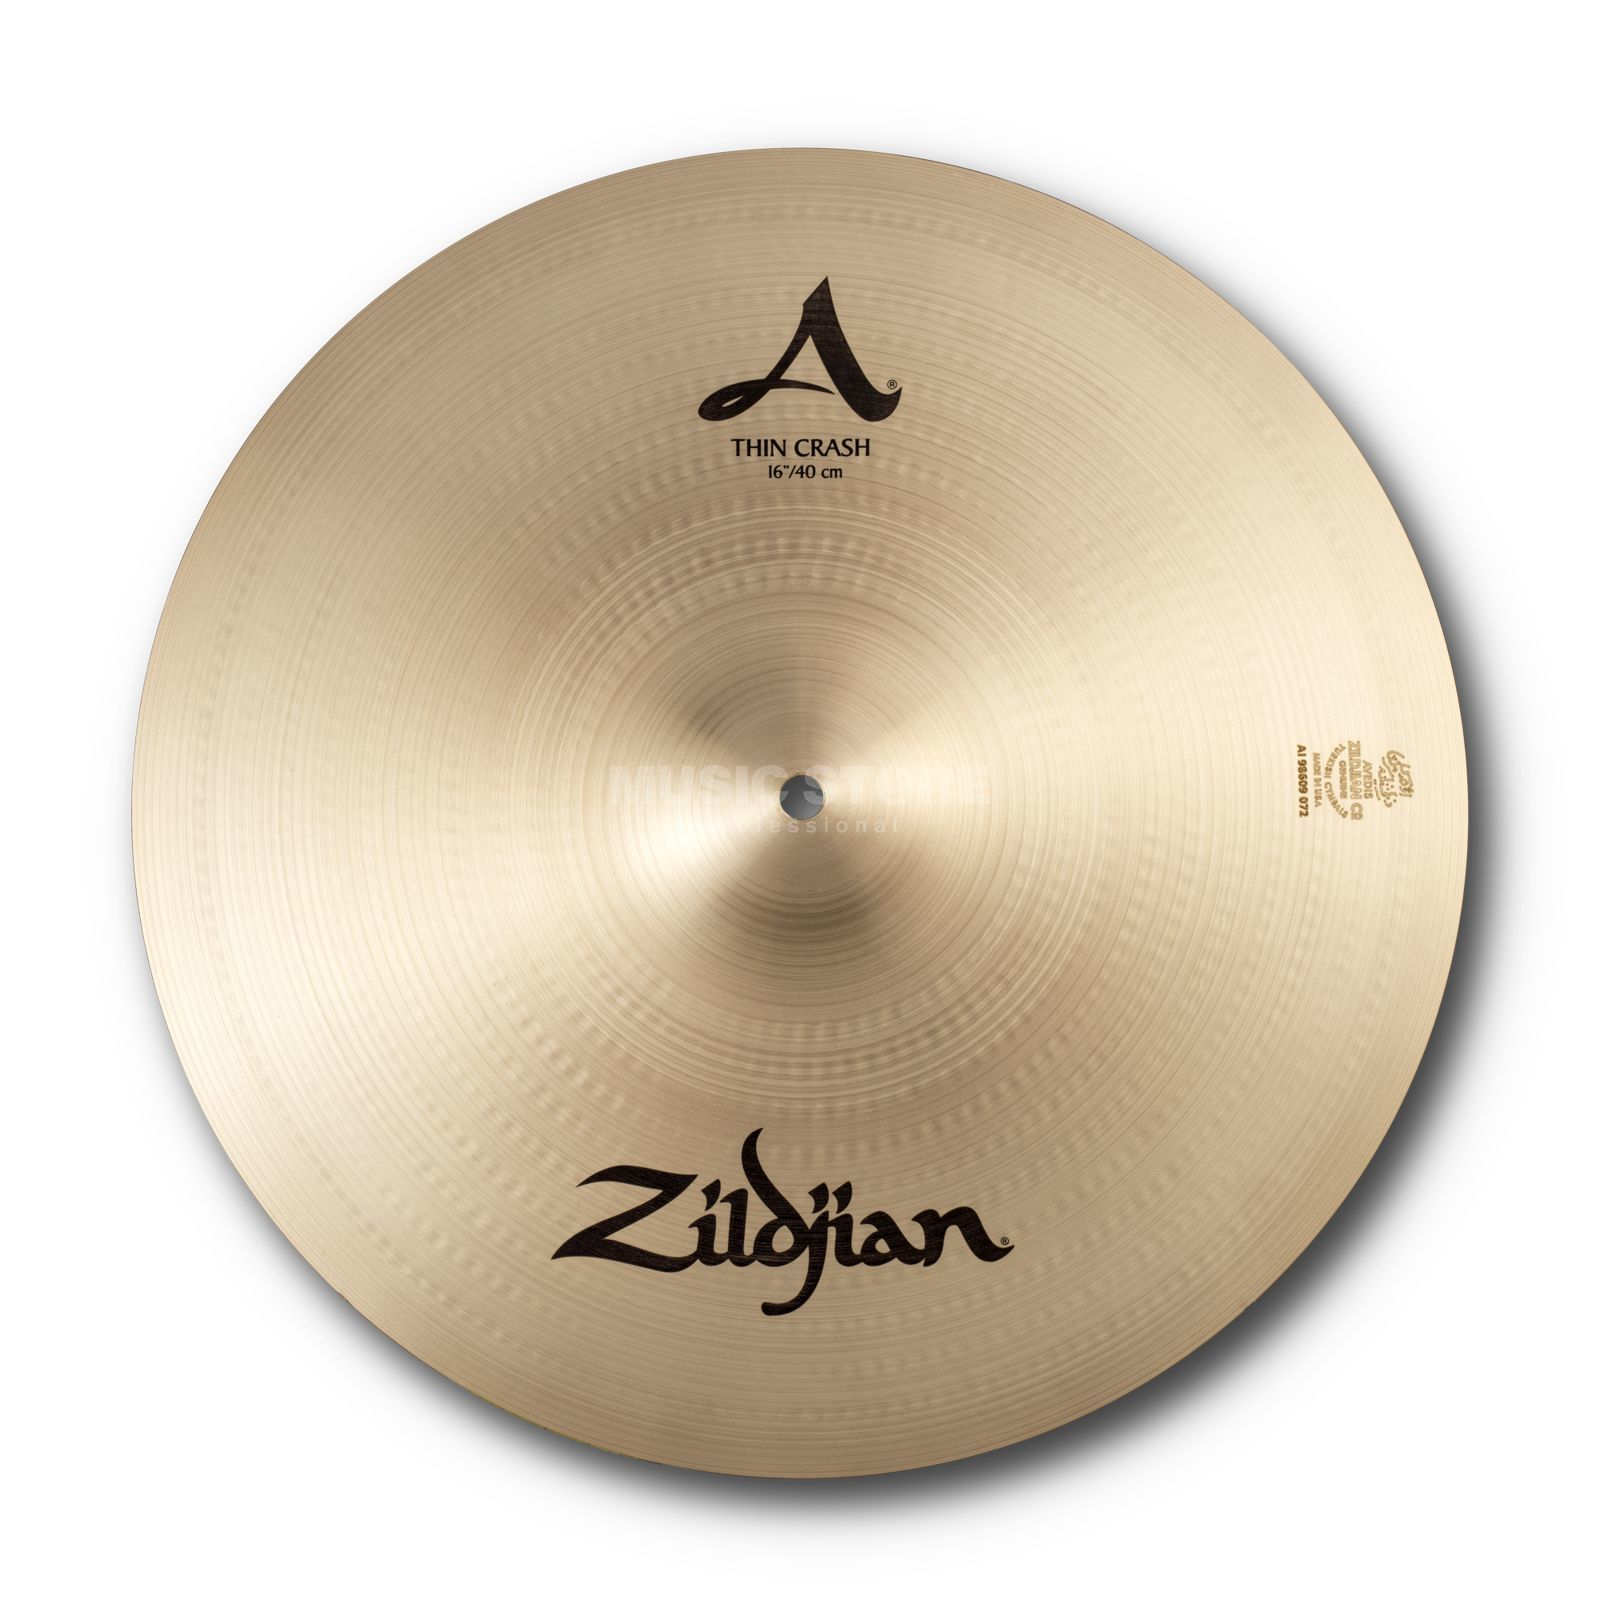 "Zildjian A' Zildjian Thin Crash 16"", Traditional Finish Produktbild"